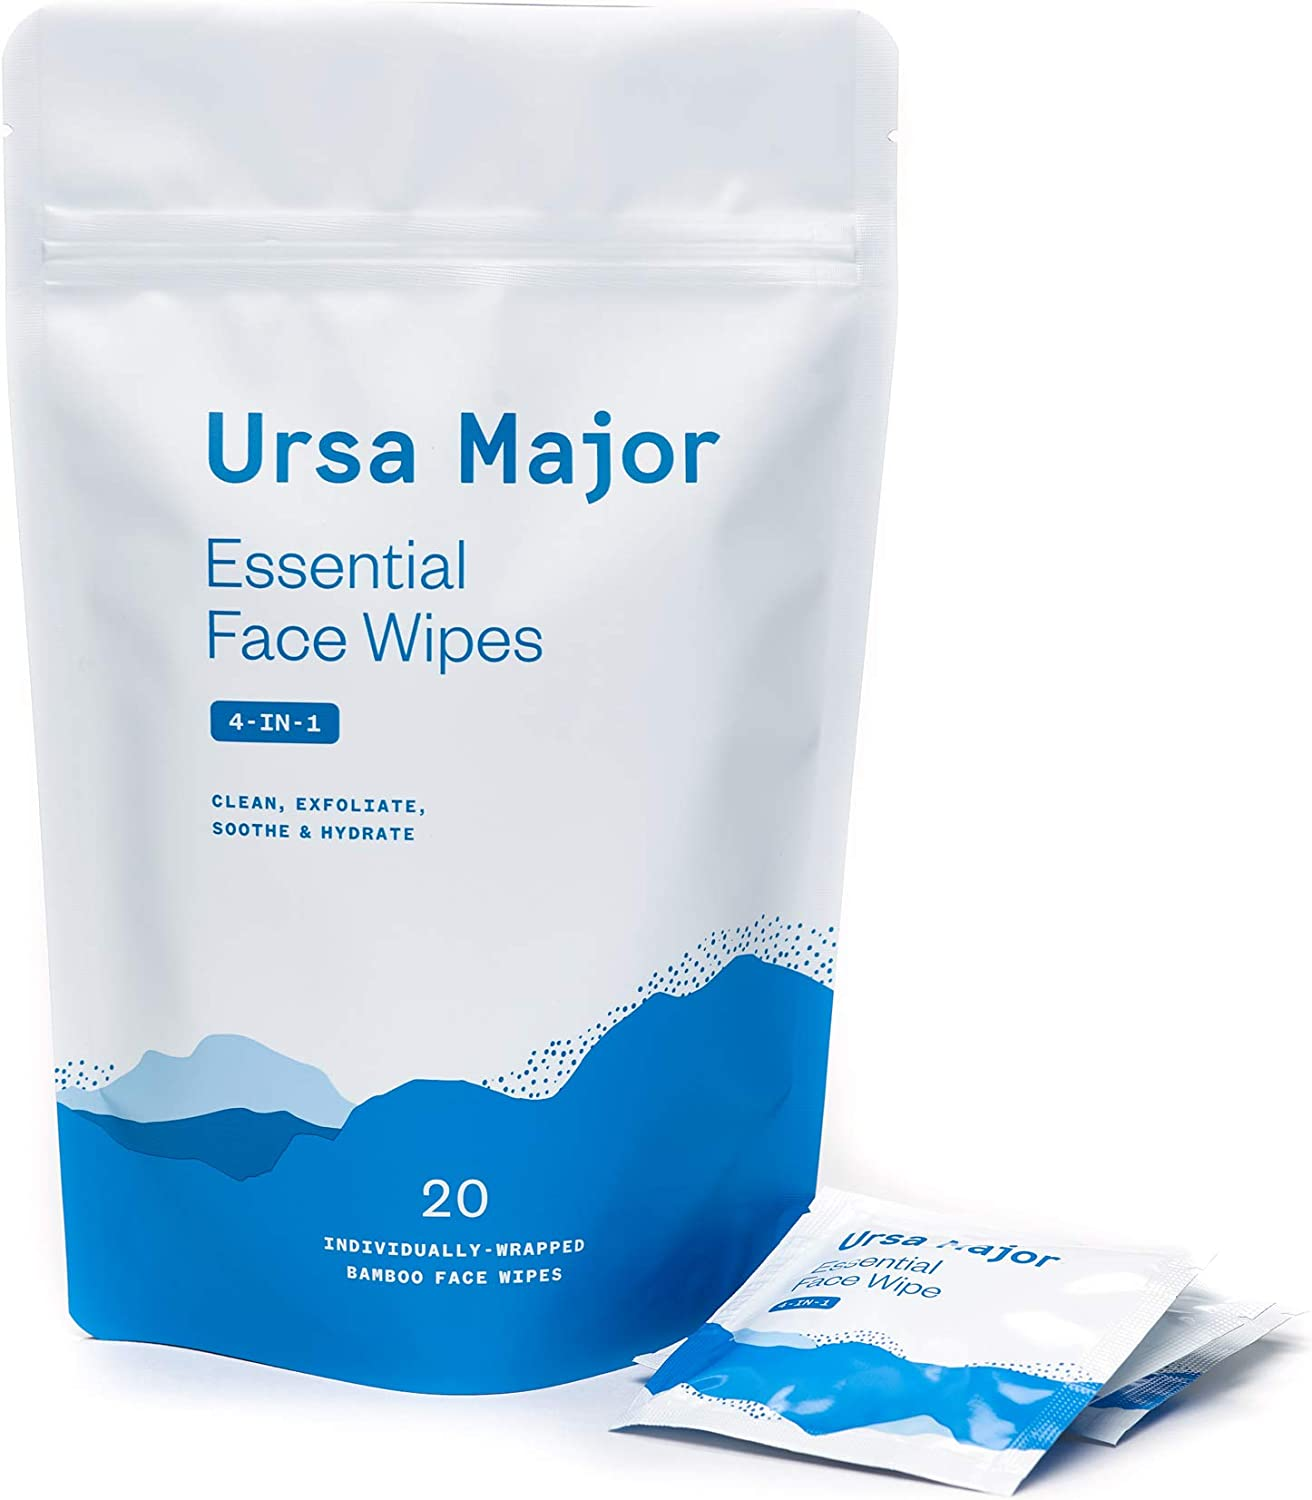 Ursa Major Essential Face Wipes | Natural, Biodegradable, Cruelty-Free | Cleanse, Exfoliate, Soothe and Hydrate | 20 Count